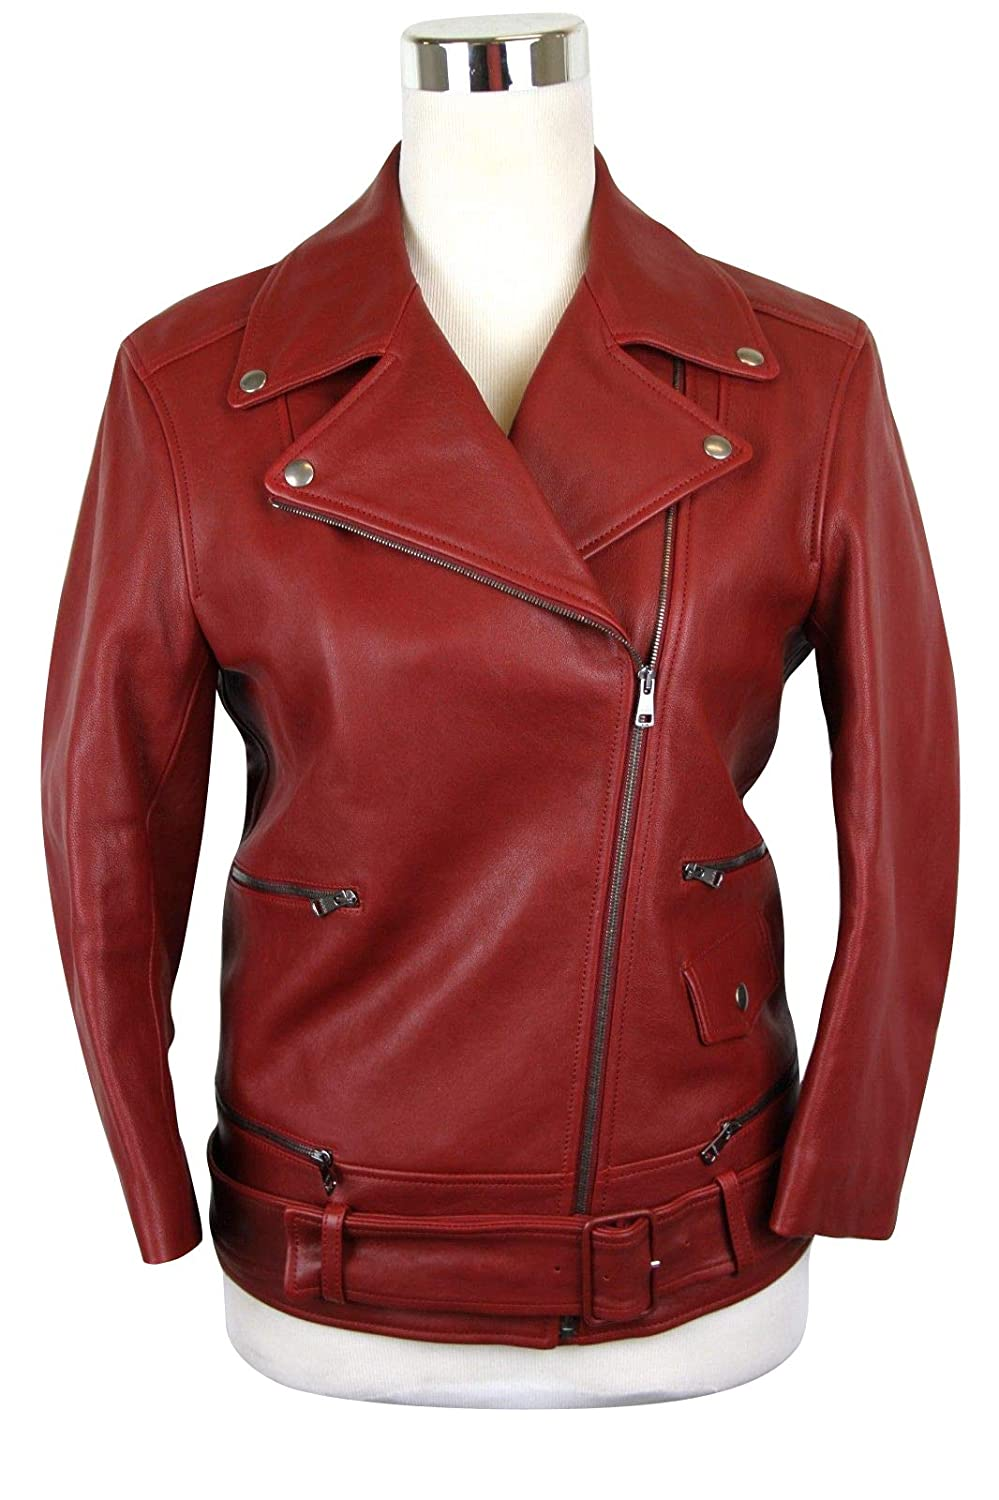 678ea1530 Amazon.com: Gucci Women's Quilted Lining Red Biker Leather Jacket ...